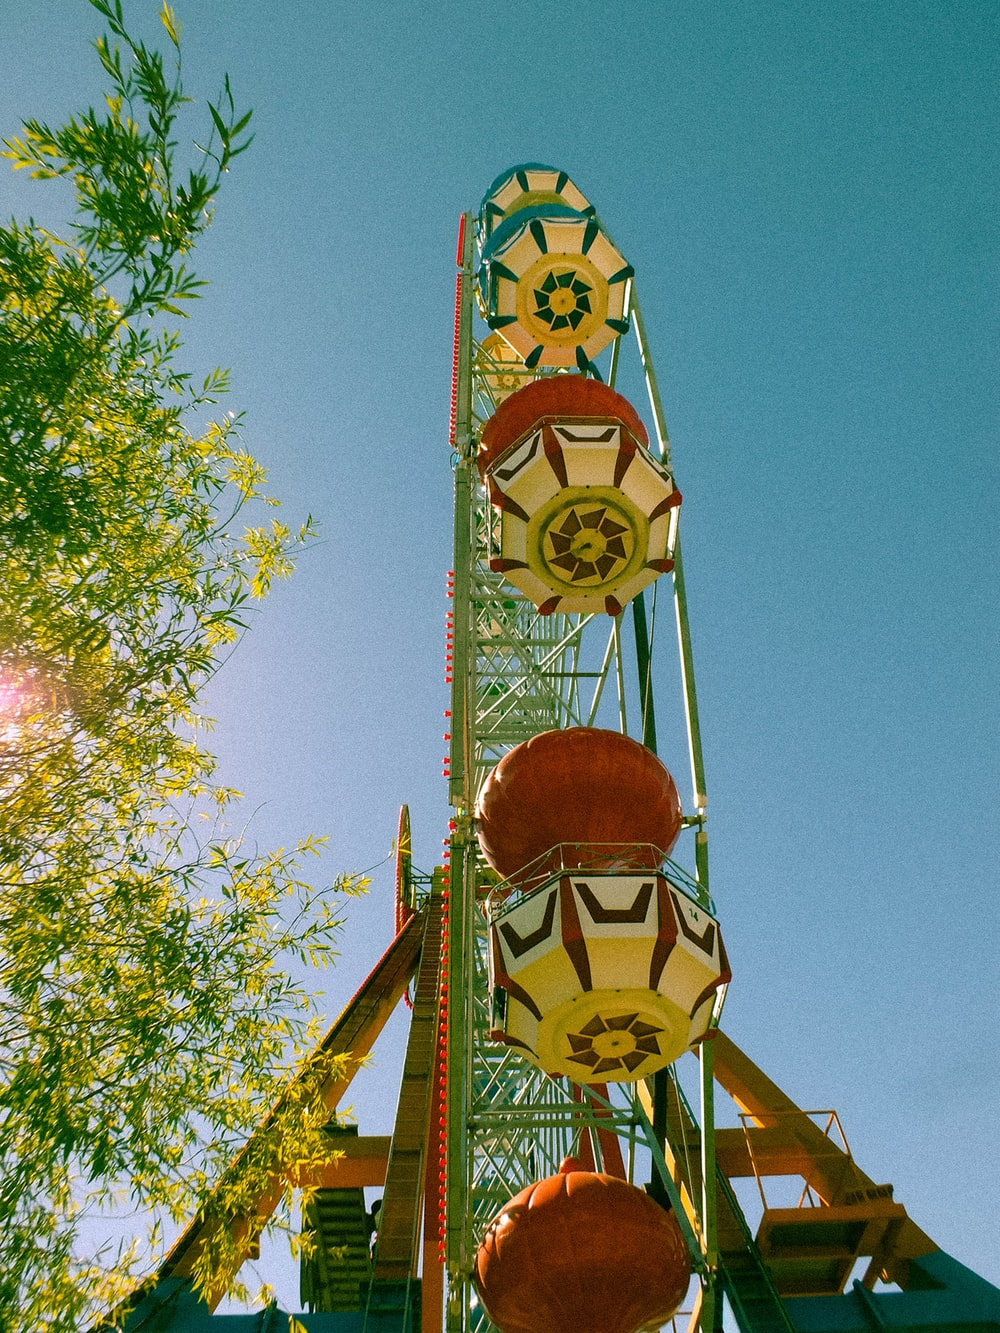 low-angle photography of green ferris wheel